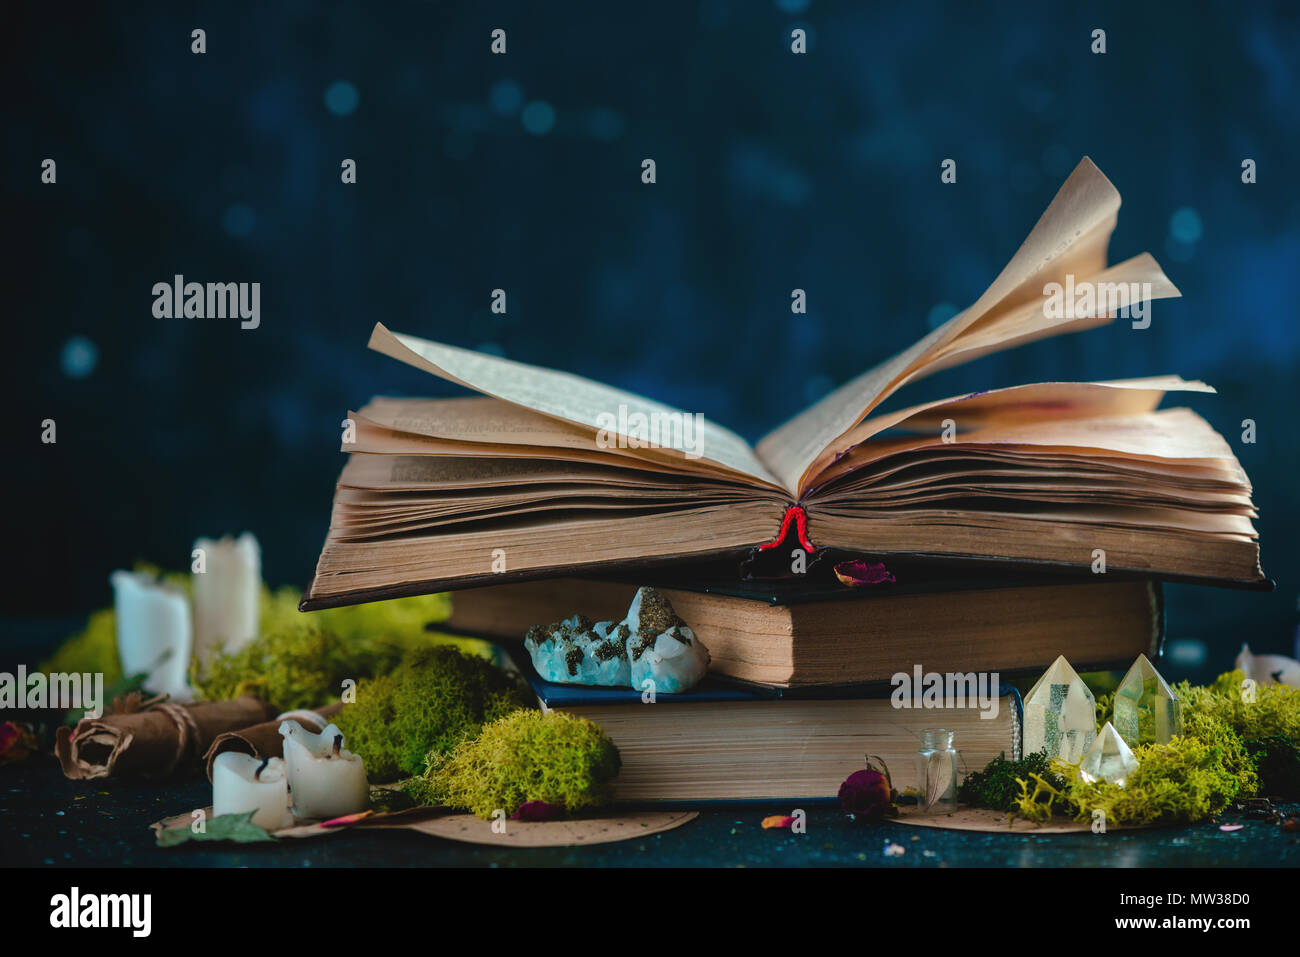 Open book with candles, crystals, and moss. Reading fantasy concept with copy space. Magical still life on a dark background with occult equipment. - Stock Image